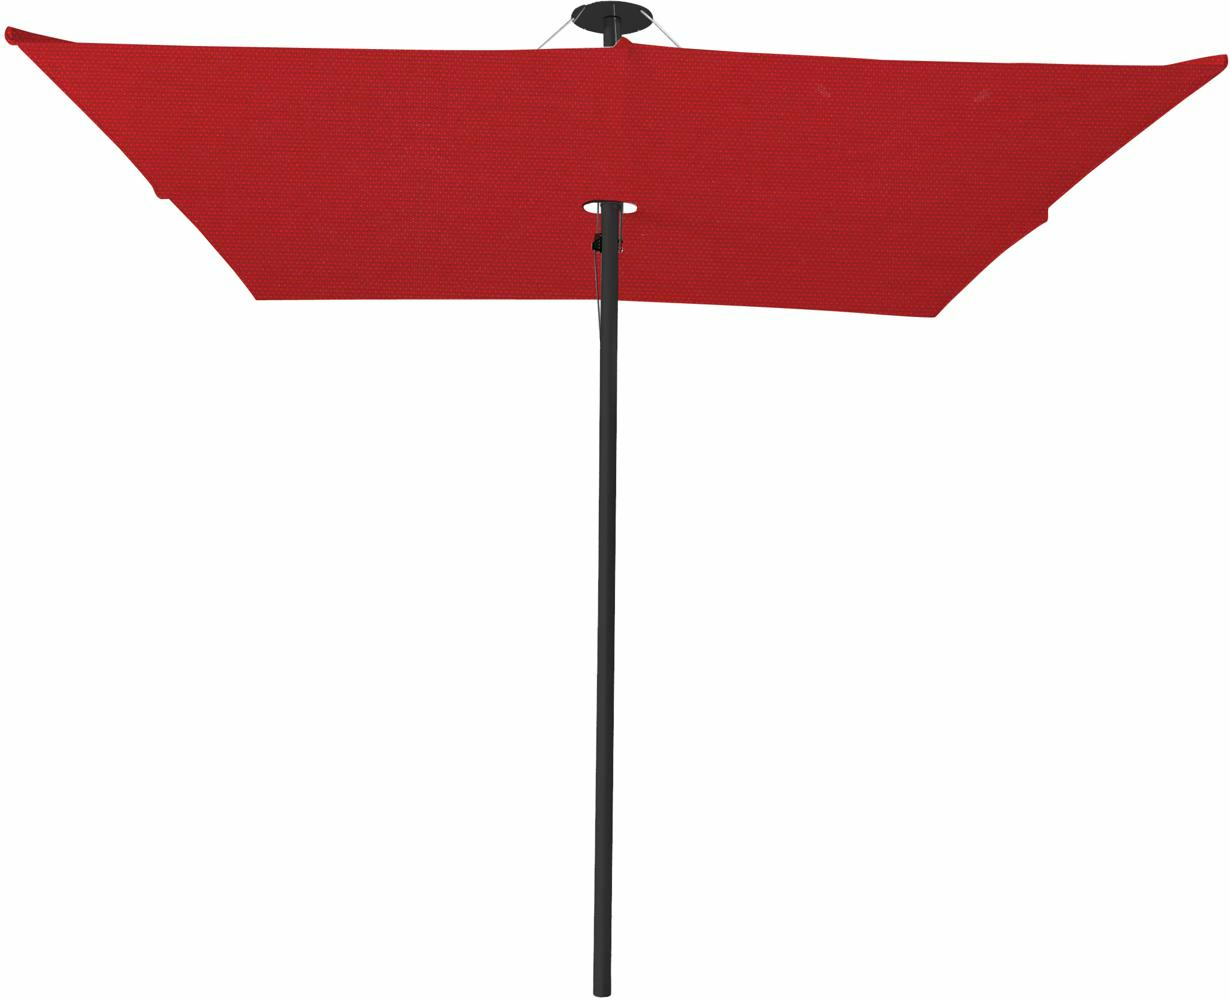 Infina center post umbrella, 2,5 m square, with frame in Dusk and Solidum Pepper canopy.